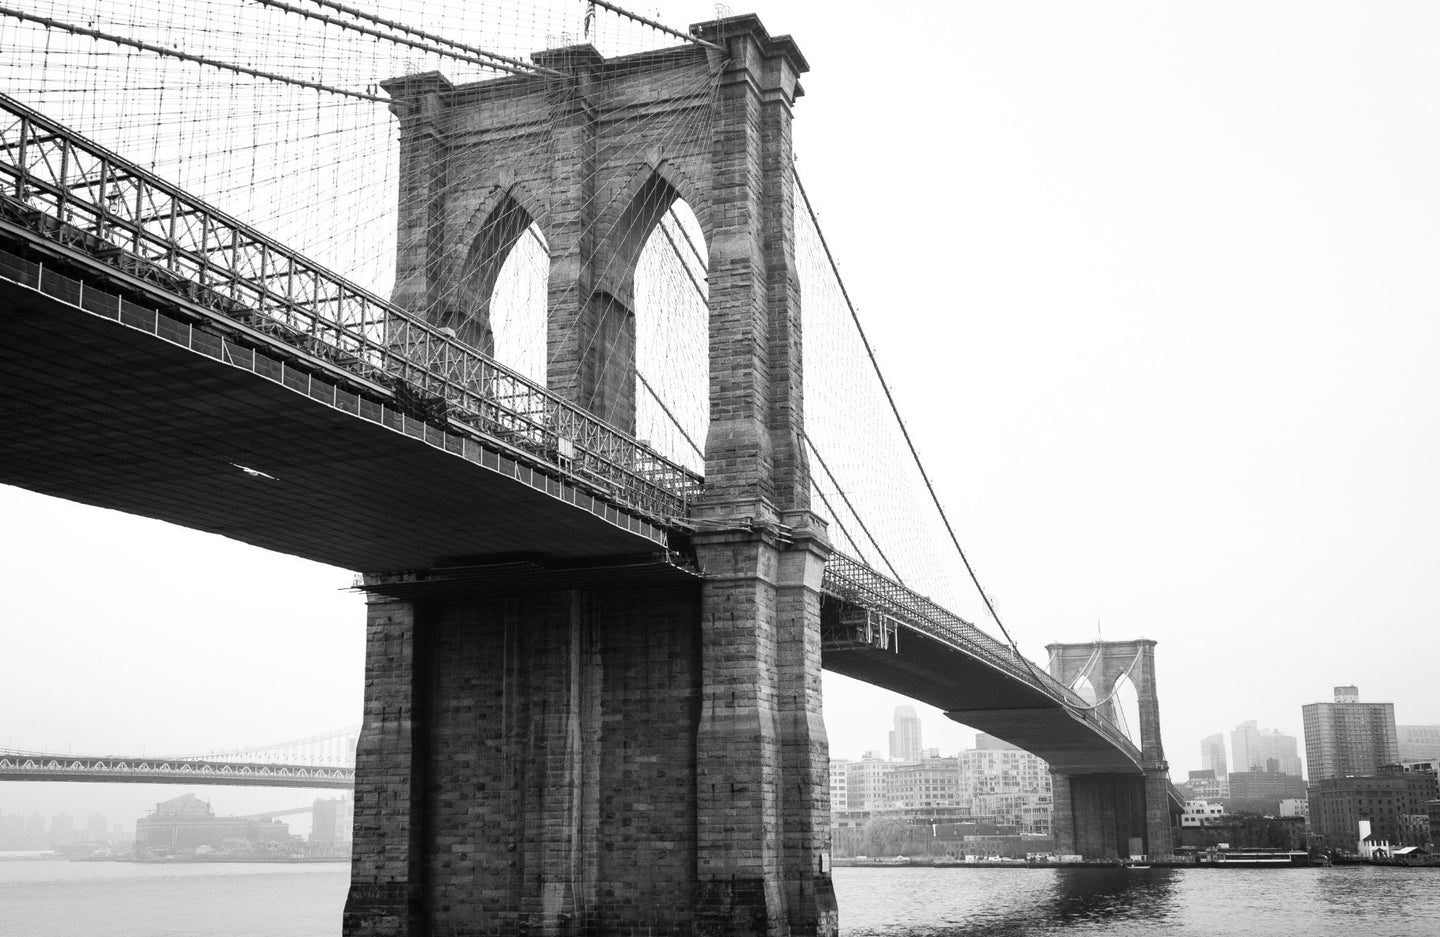 Black & White Bridge - 0163 - Wall Murals Printing - wall art